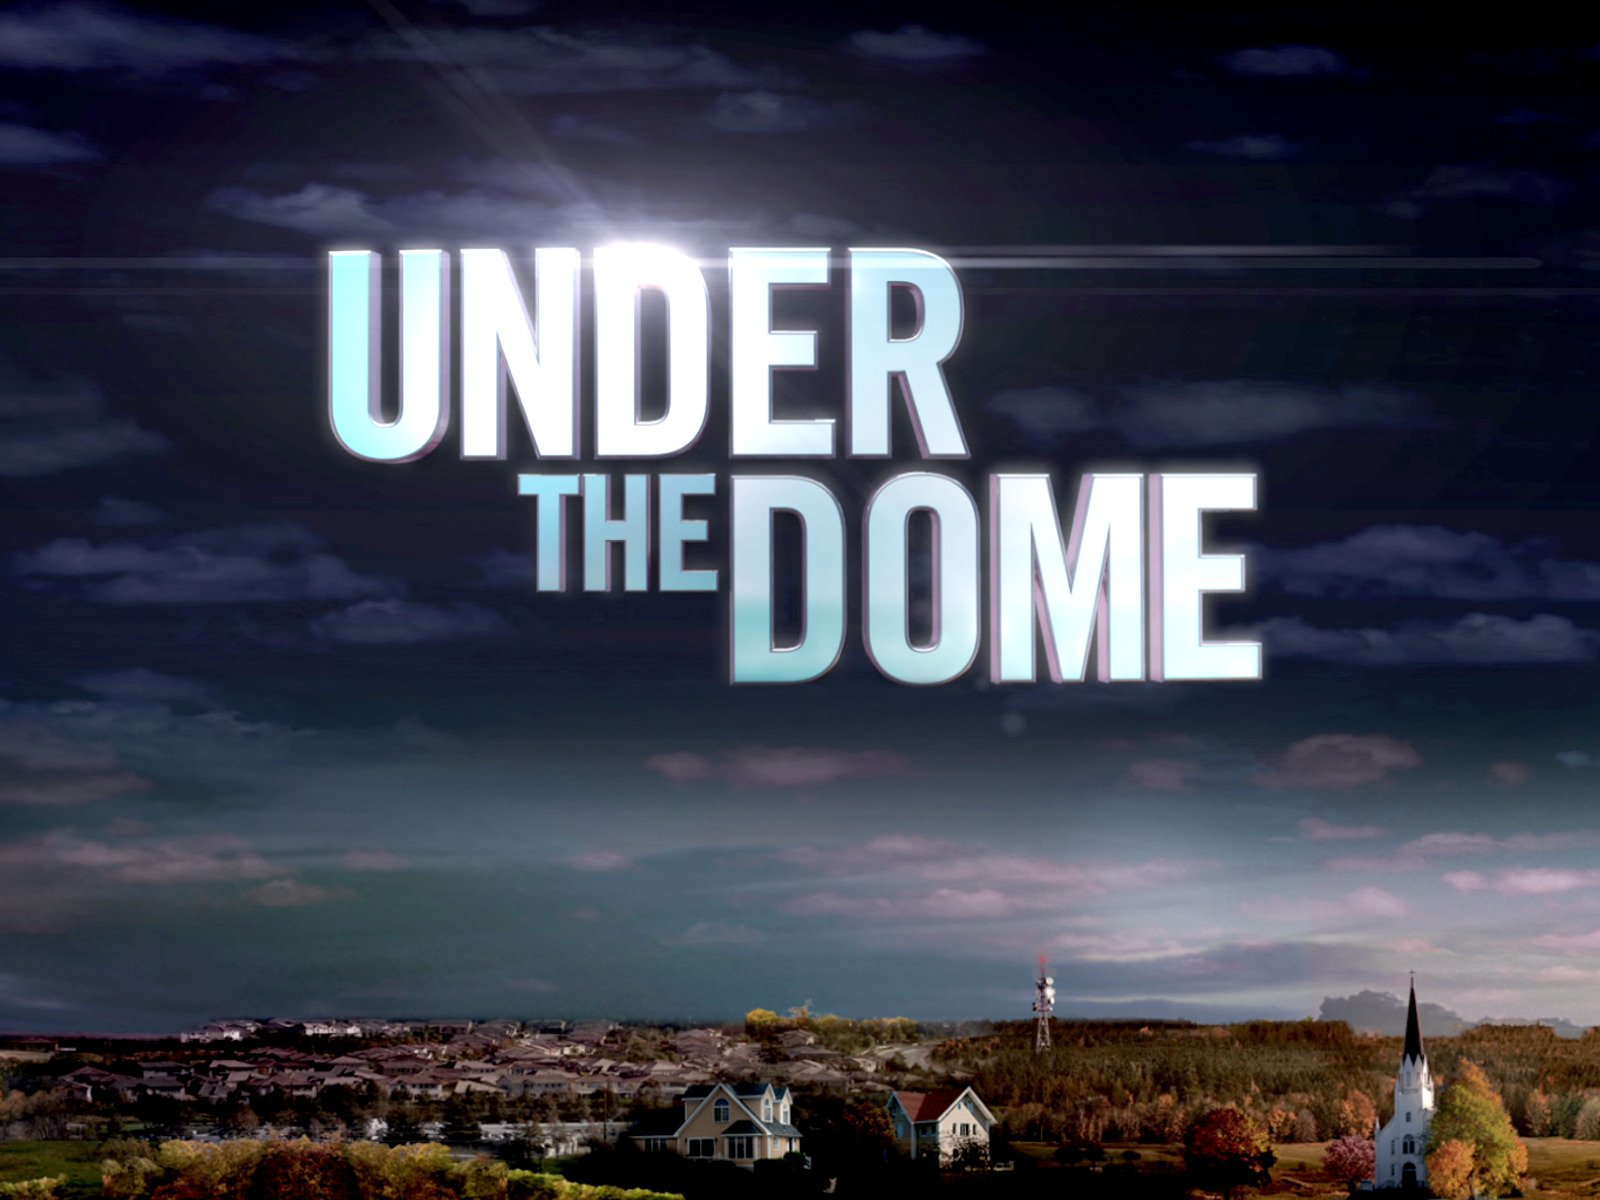 Under The Dome Season 2 - Season 2